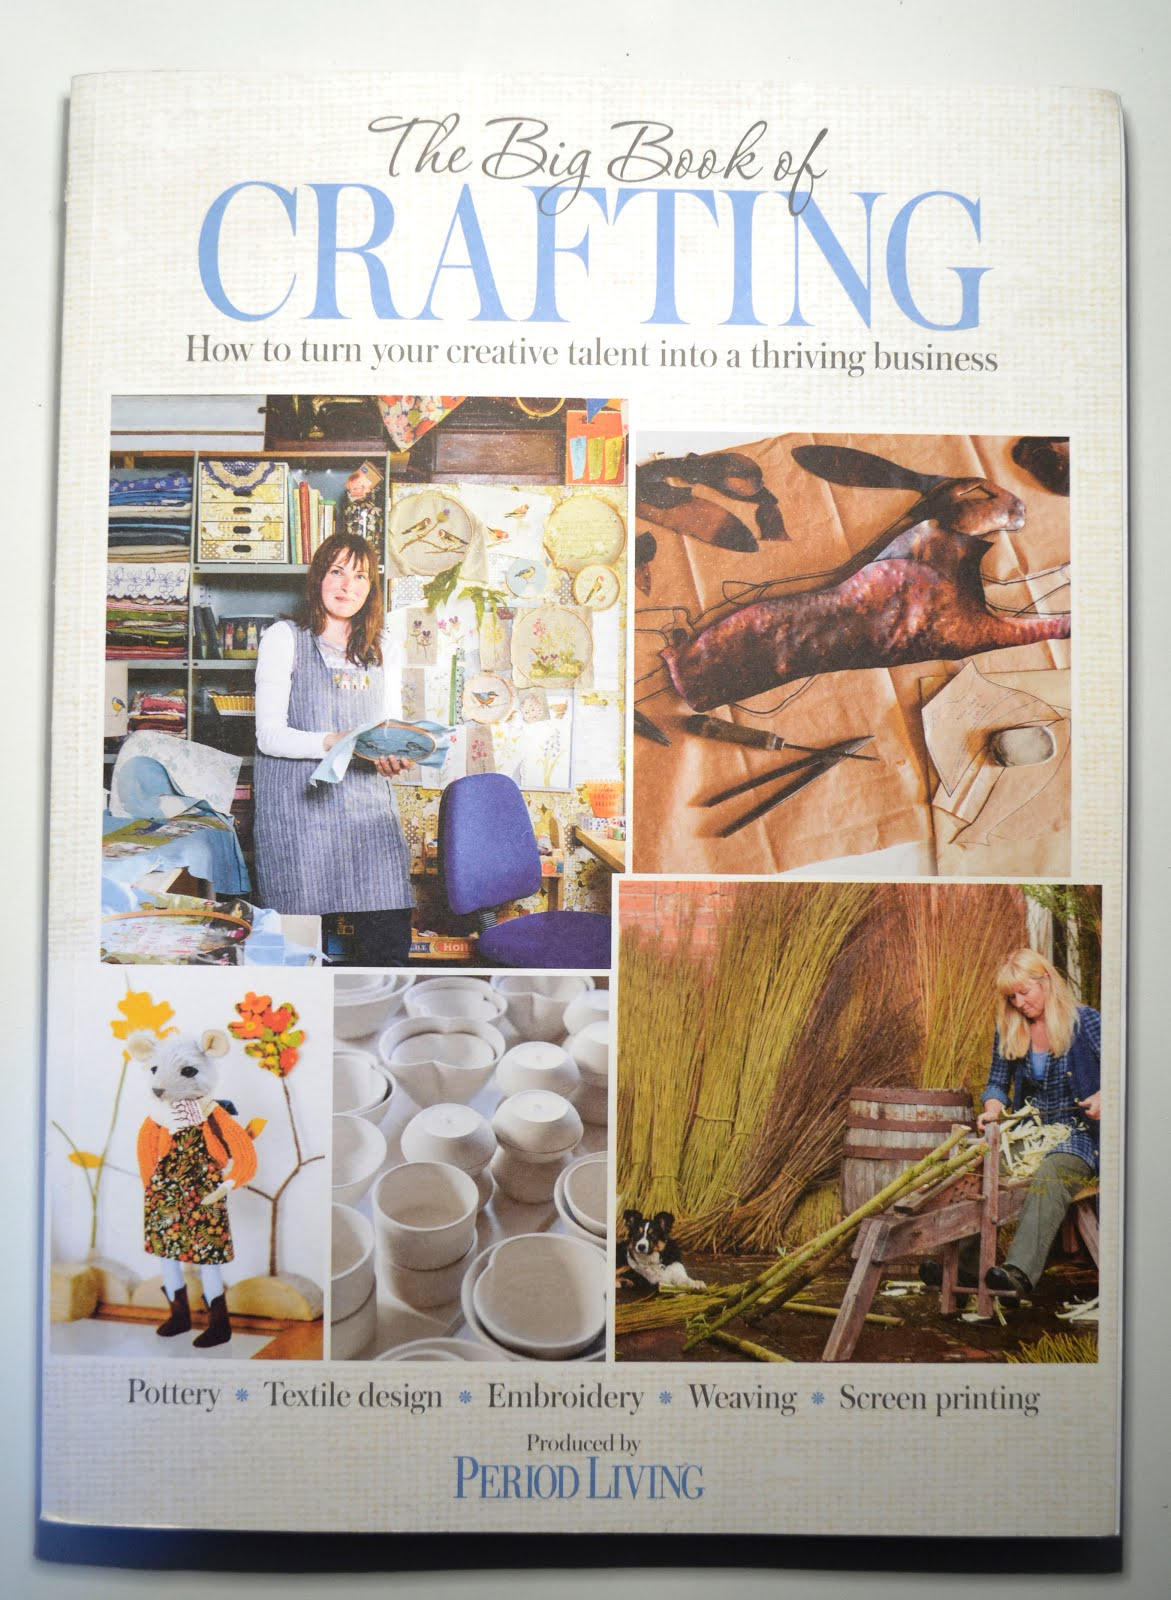 Period Living Magazine - The Big Book of Crafting